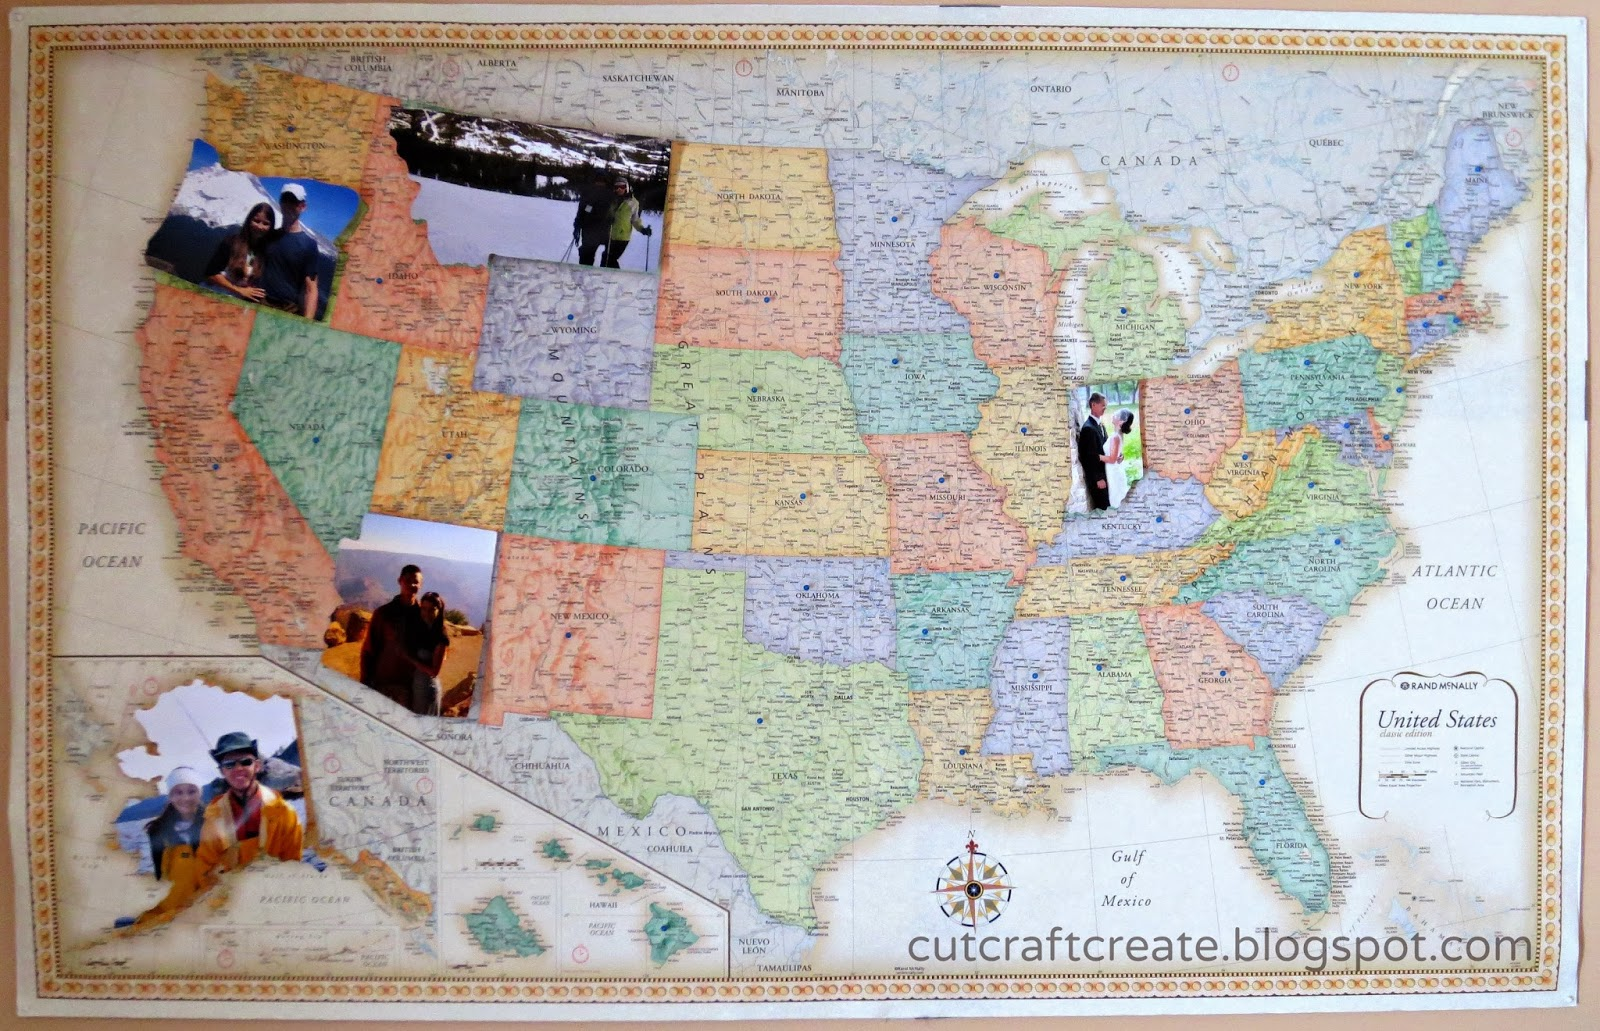 Cut craft create map inspired home decor for House map creator